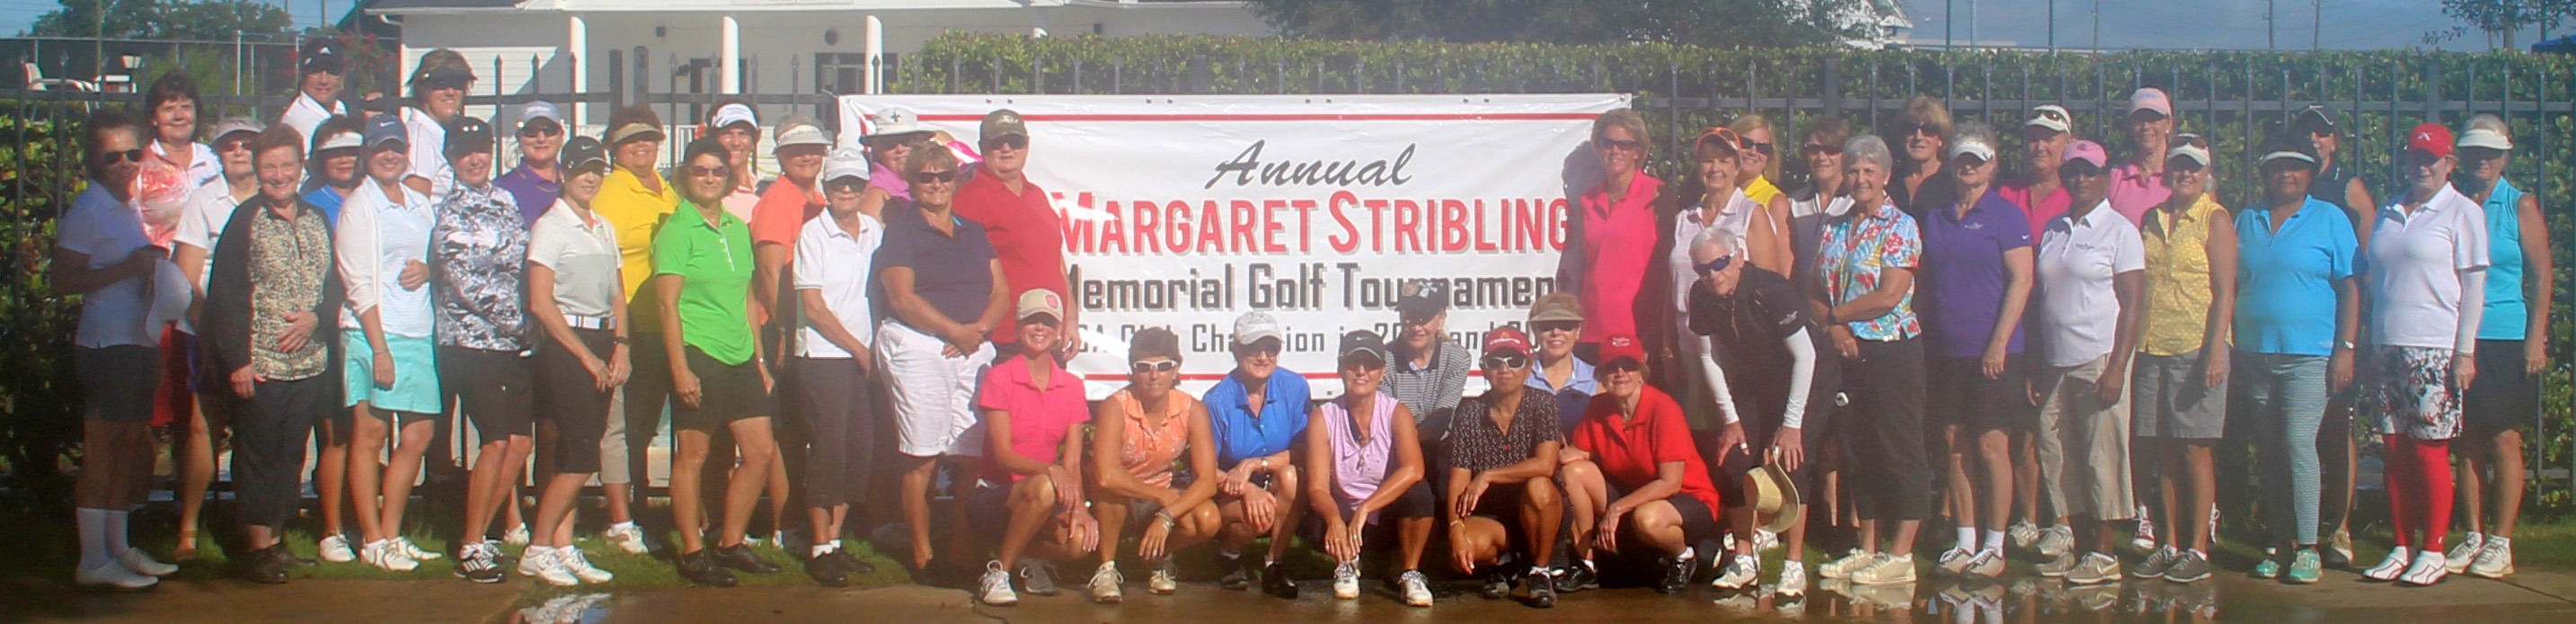 Margaret Stribling tournament, Sep 2